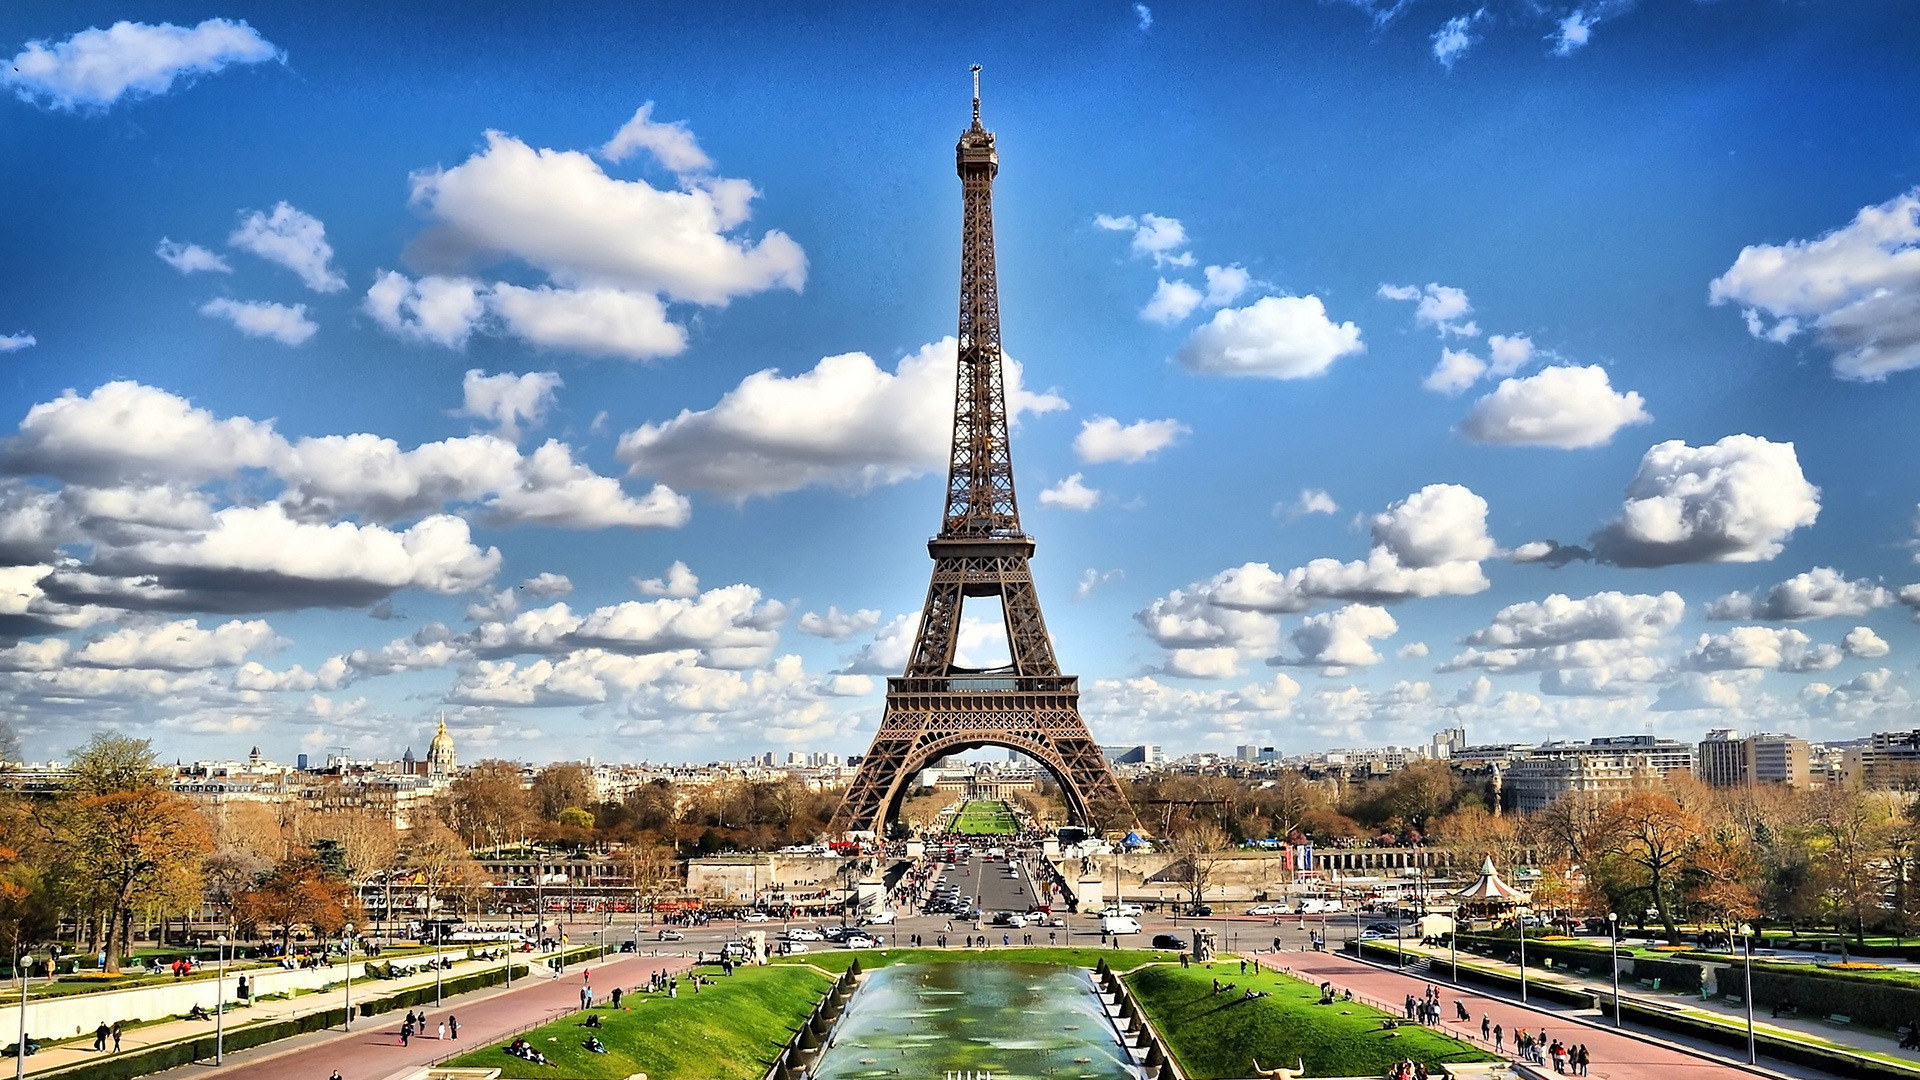 Eifel Tower in Clear Sky in France 198.88 Kb